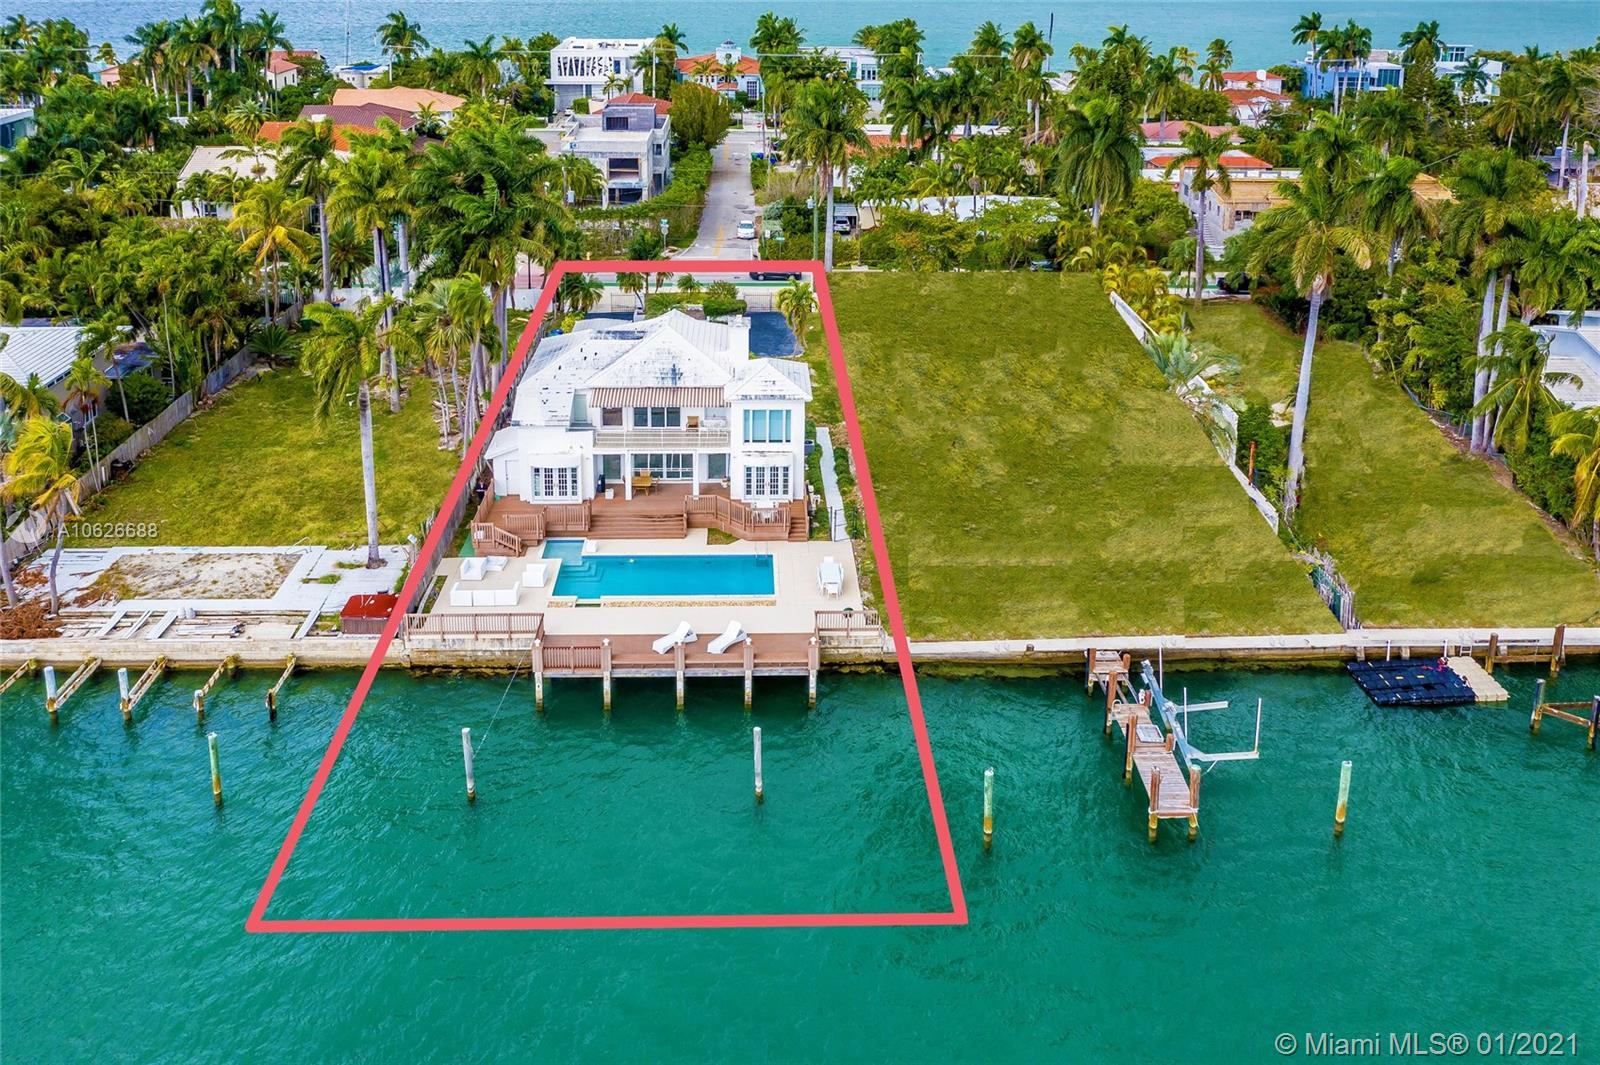 RESIDE WITH THE ULTIMATE VIEWS OF THE DOWNTOWN MIAMI SKYLINE, SAILBOAT BAY & CRUISE SHIPS! Buy this stand-alone 12,250 Sq Ft LOT with 70 Ft of Waterfrontage or COMBINE with adjacent TWIN LOT for an opportunity to BUILD a Mega Estate Overlooking the OPEN WATER of the Biscayne Bay & City Skyline with a total of 140 Ft of Waterfrontage & 24,500 Sq Ft of Land. The Southwest Exposure allows for lots of Natural Light all year round and the Perfect Sunsets! Located in the hip Venetian Islands just seconds to South Beach, Sunset Harbour & Lincoln Road and minutes to Downtown's Performing Arts District, Wynwood & the Design District.